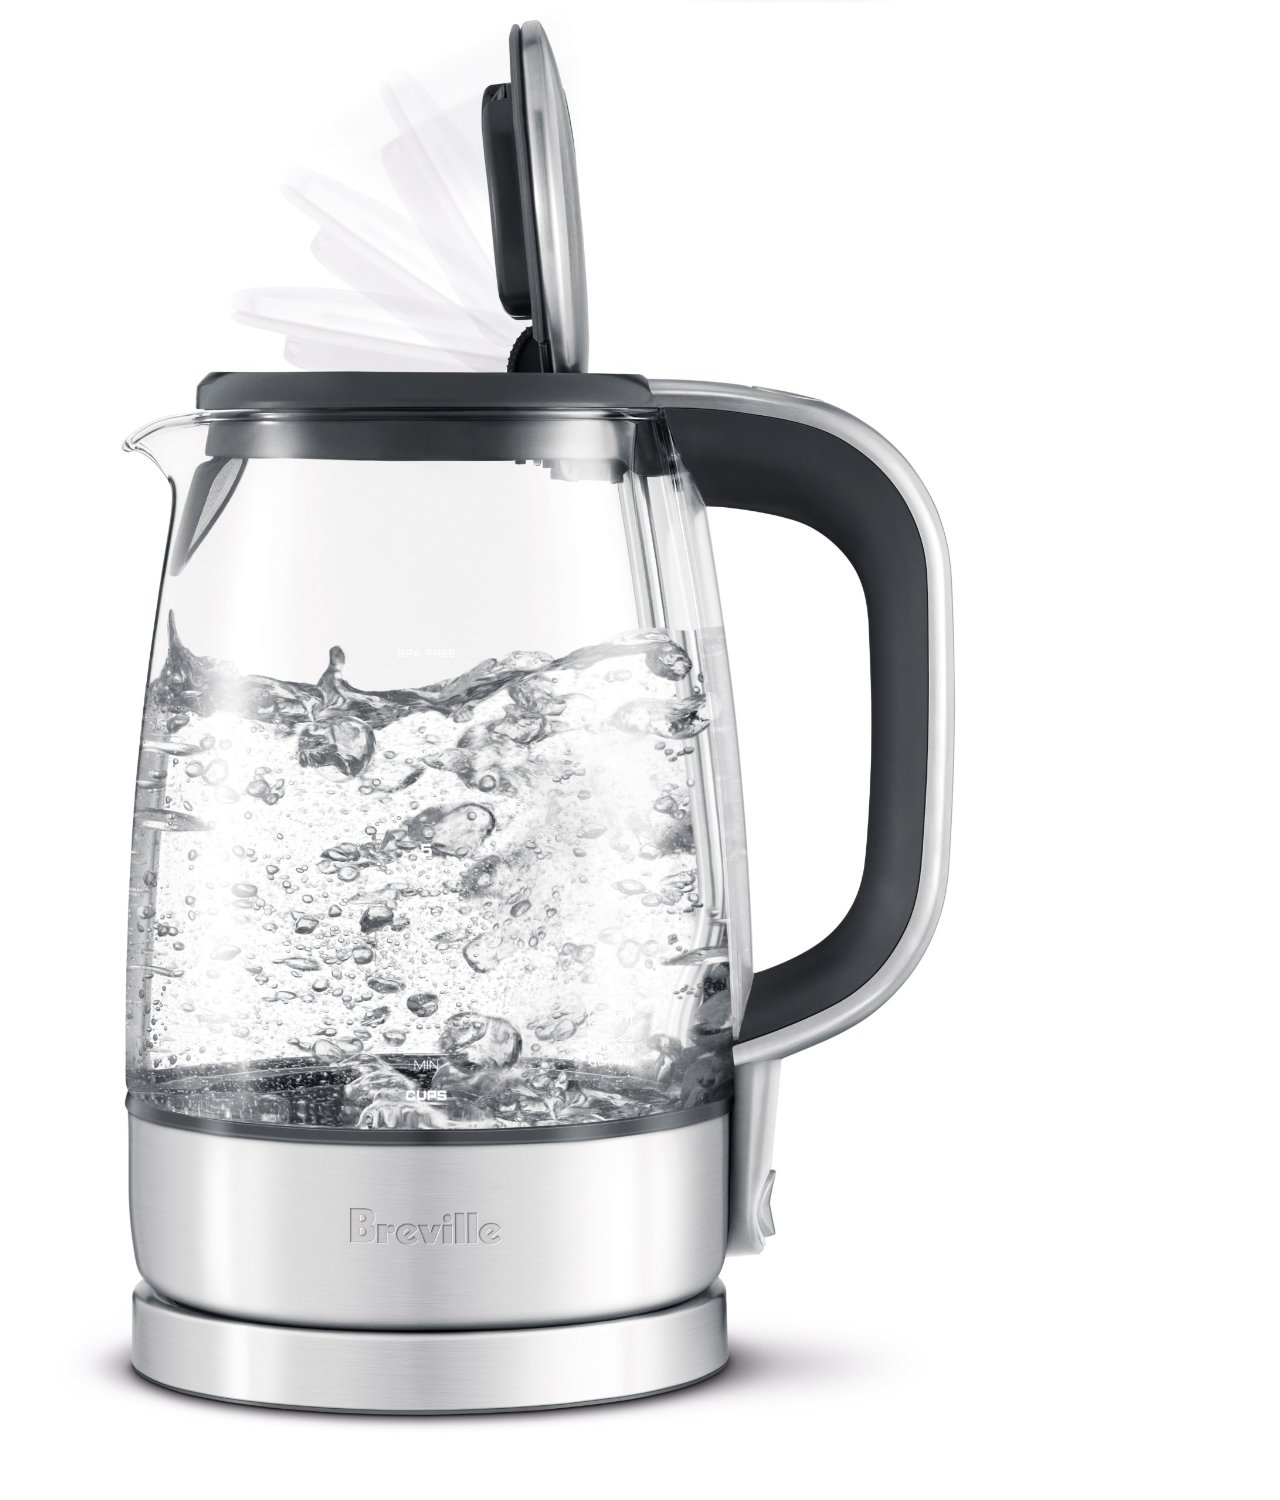 Breville glass kettle review